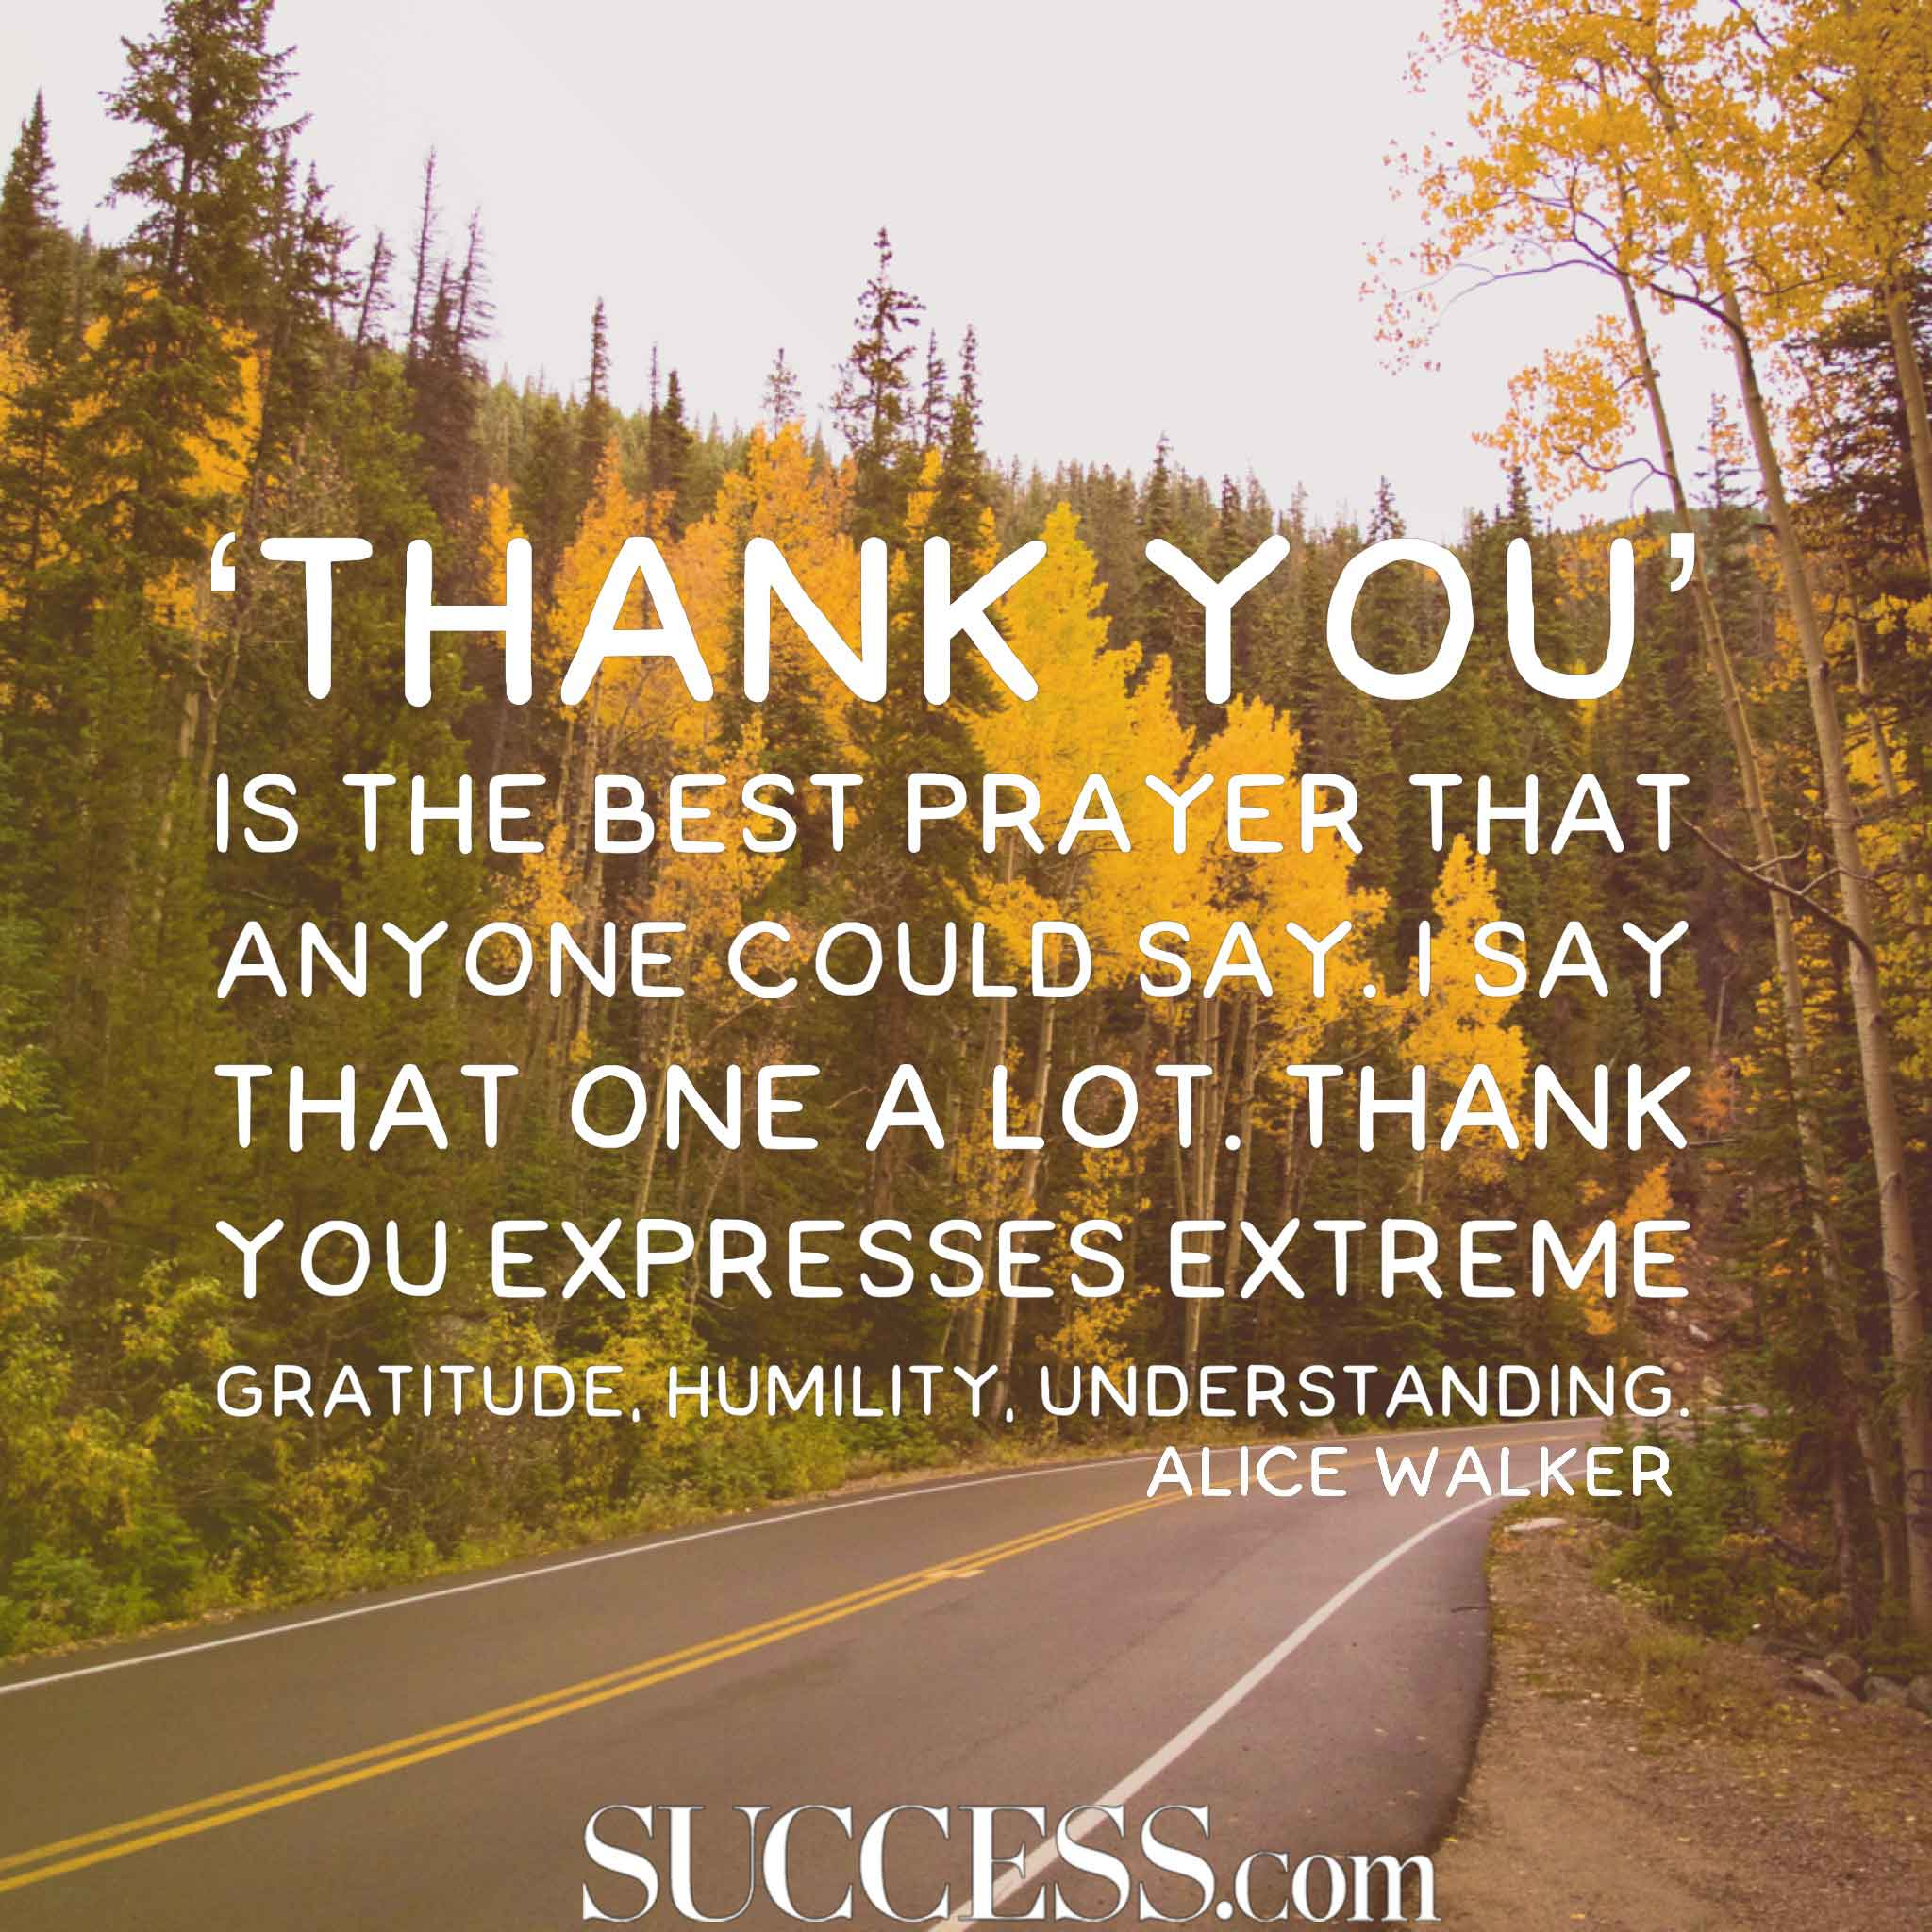 15 Thoughtful Quotes About Gratitude | SUCCESS